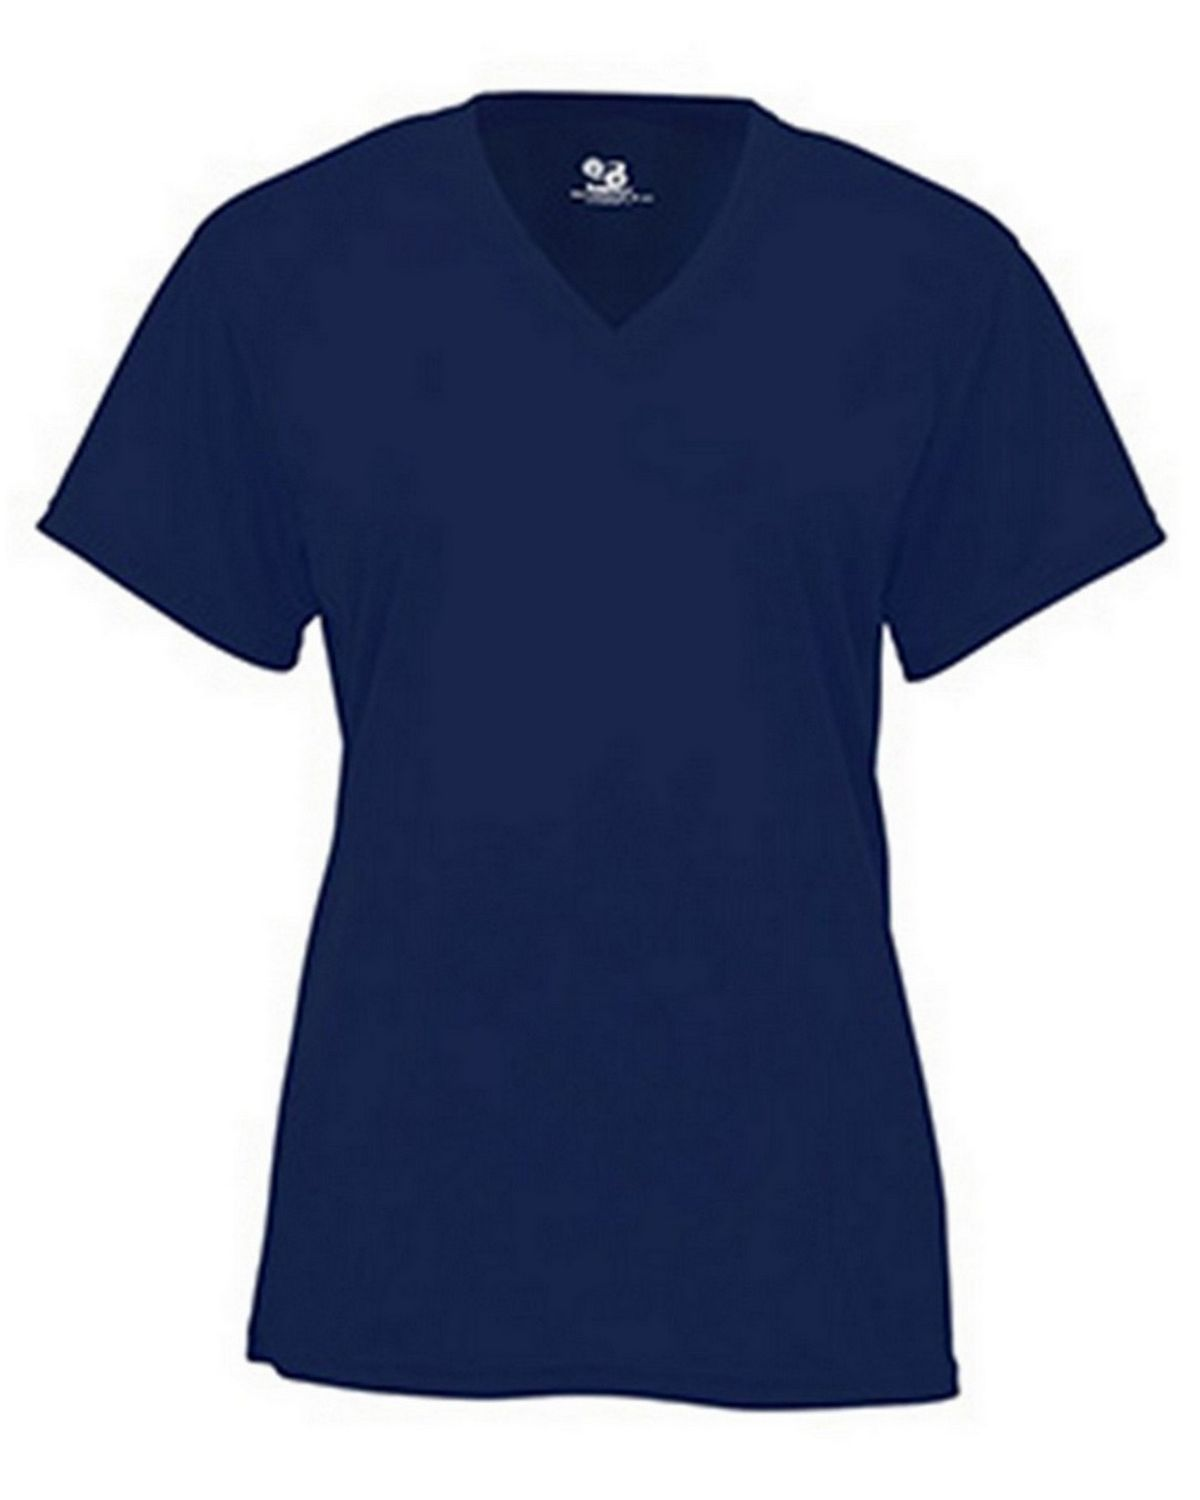 Badger BD4162 Ladies Short Sleeve Tee - Navy - 2X BD4162